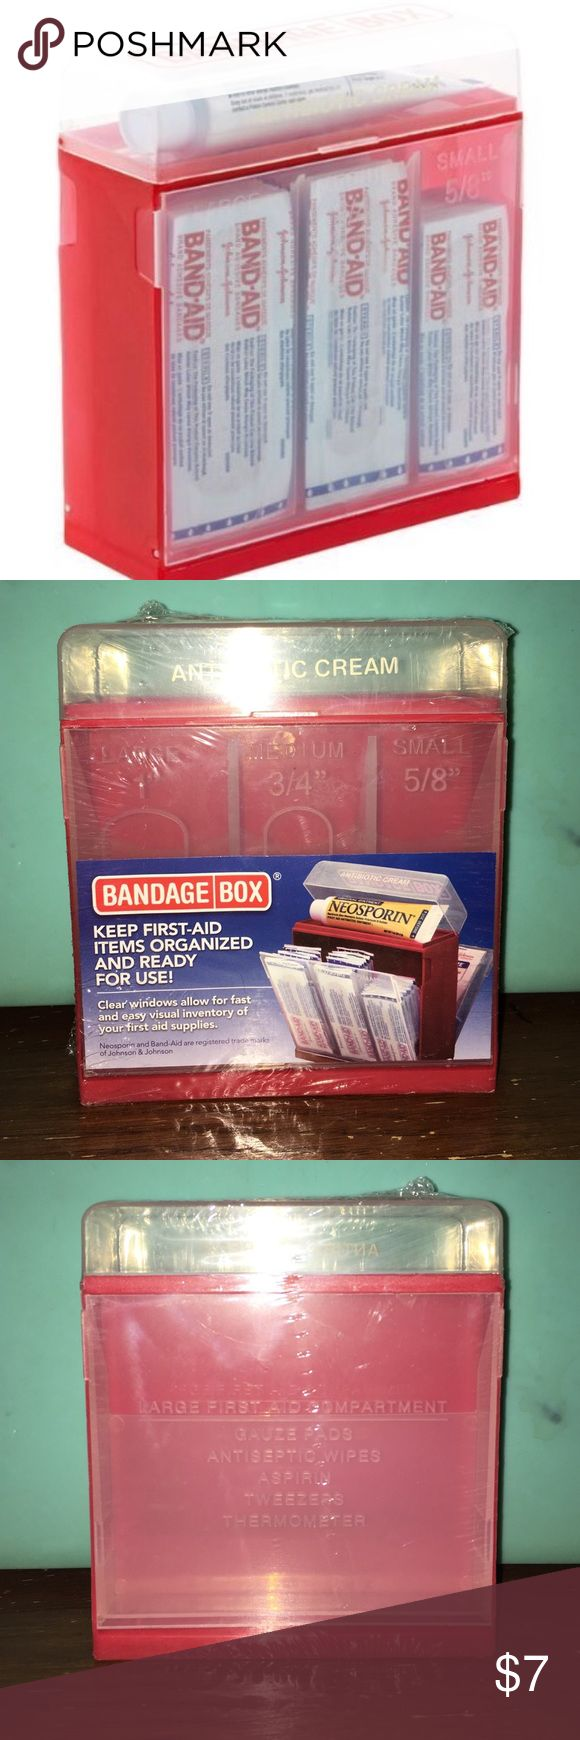 ‼️FINAL PRICE‼️Bandage Box Container ‼️FINAL PRICE‼️Bandage Box Container, first aid kit. Still in plastic wrap. Never opened. Keep first-aid items organized & ready for use! Clear Windows allow for fast & easy visual inventory of your first aid supplies. Originally $10.             ❌No Holds ❌No trades❌ Other